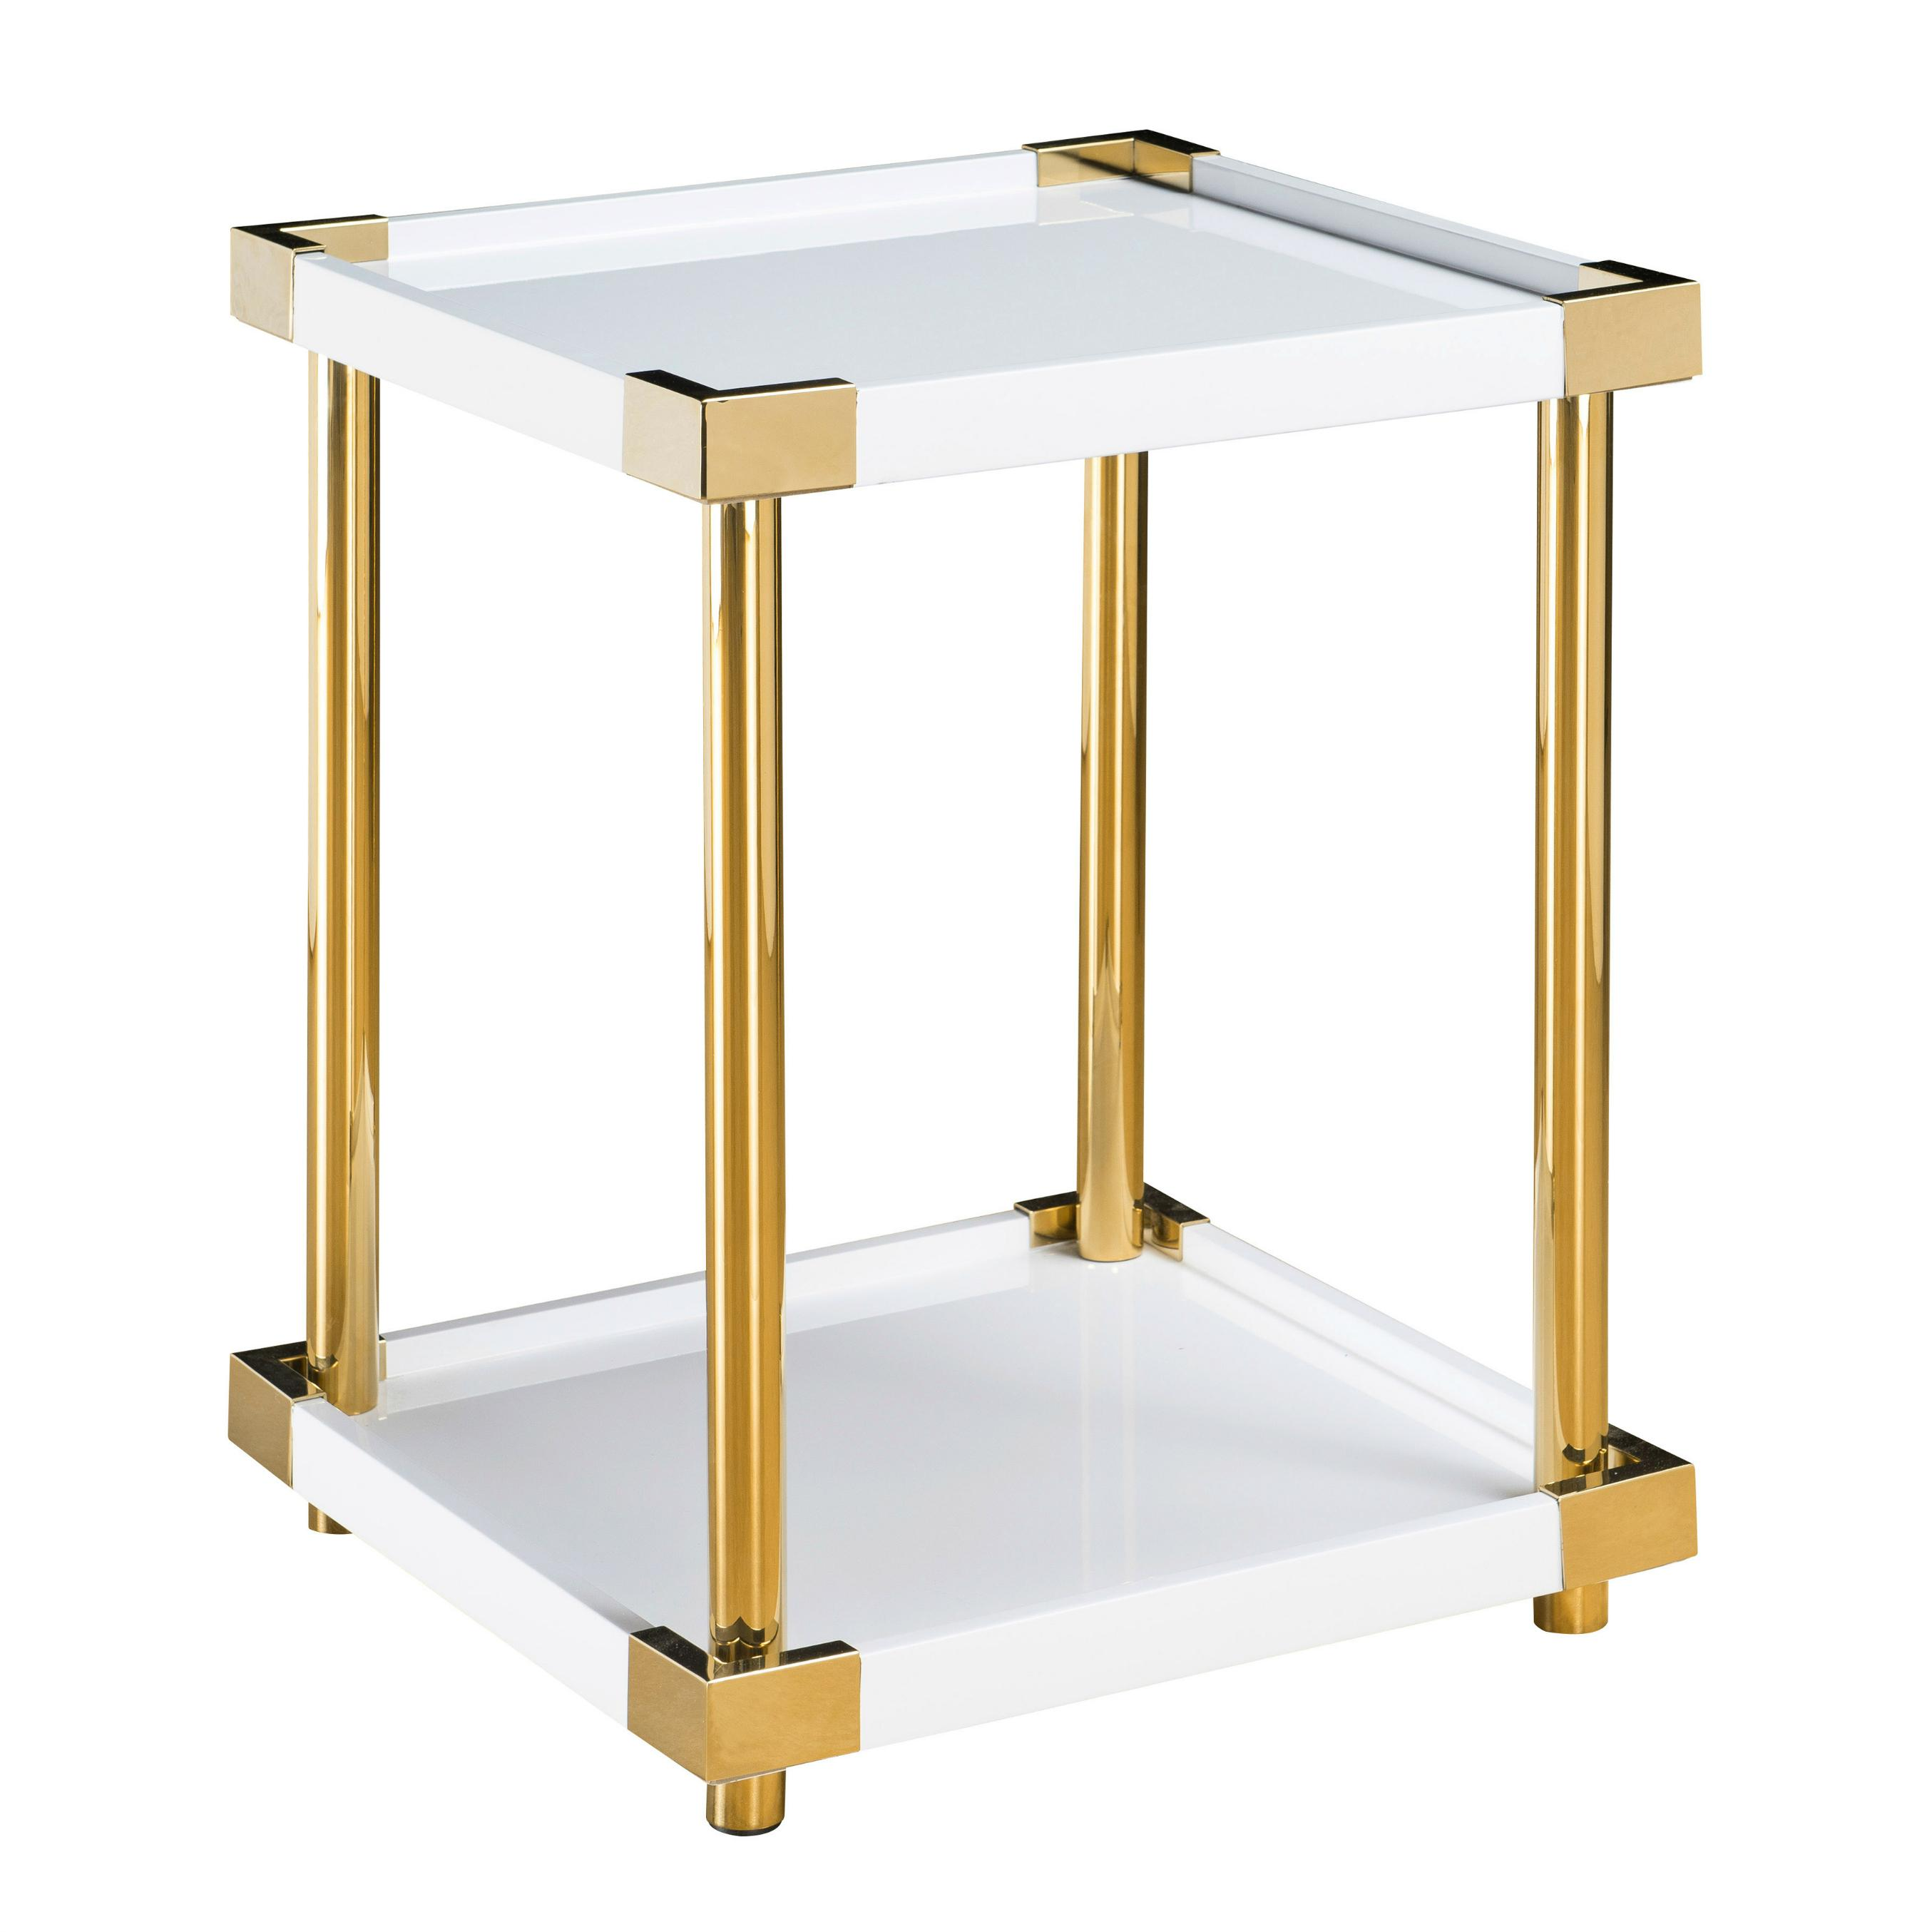 pulaski home comfort collection ariene square accent table modern gold white marble metal gray nautical bathroom ideas small top coffee pub set mainstays replica furniture side